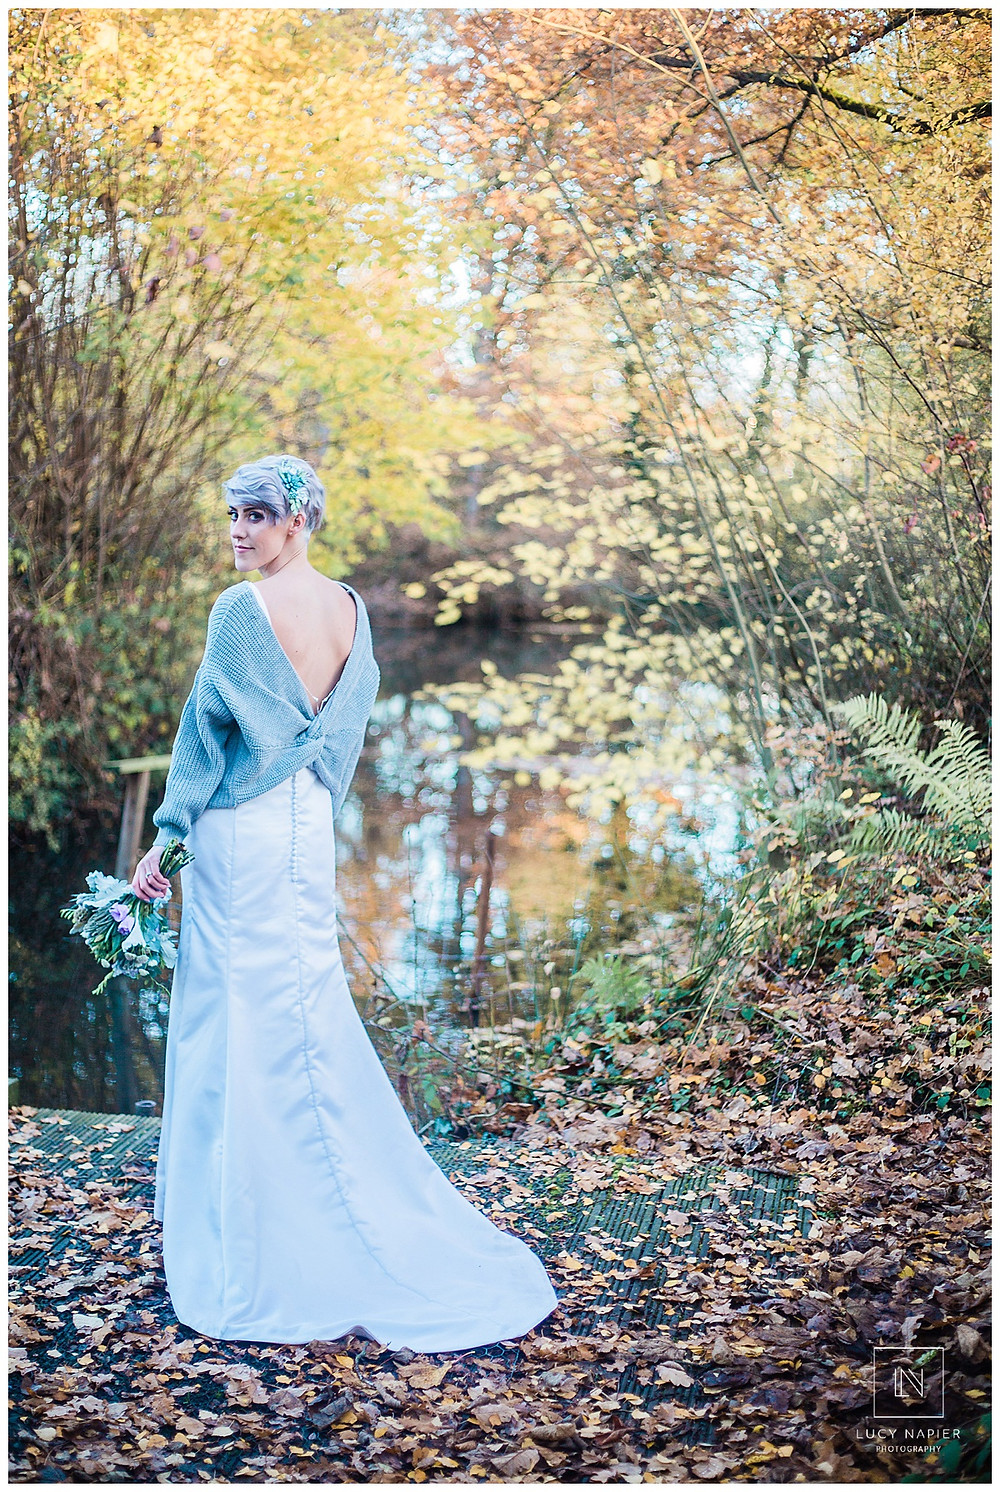 the bride stands alone on the edge of the lake with her bouquet